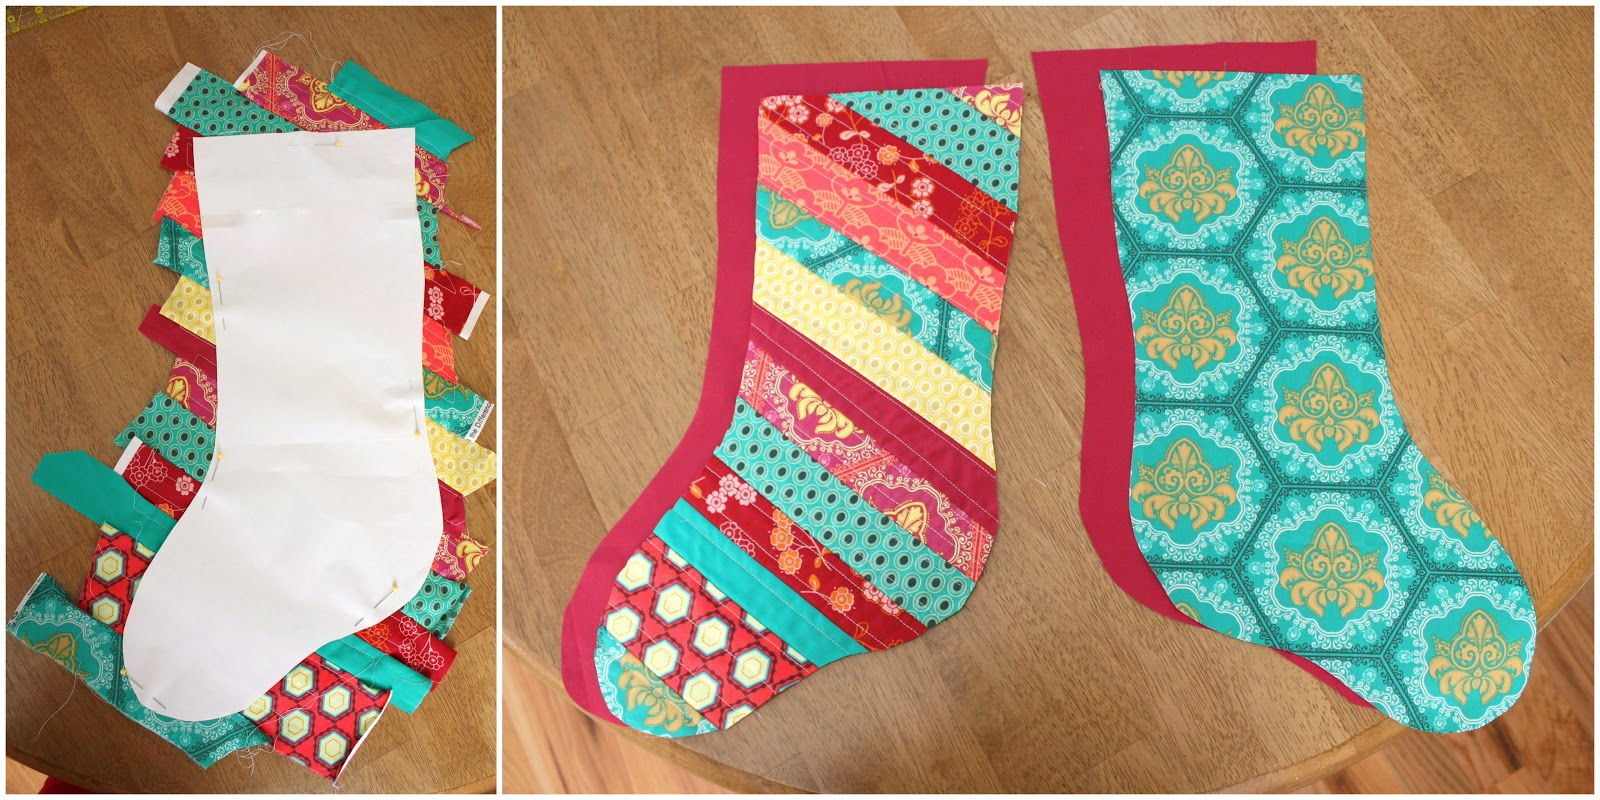 Christmas stocking tutorial diary of a quilter a quilt blog jeuxipadfo Gallery